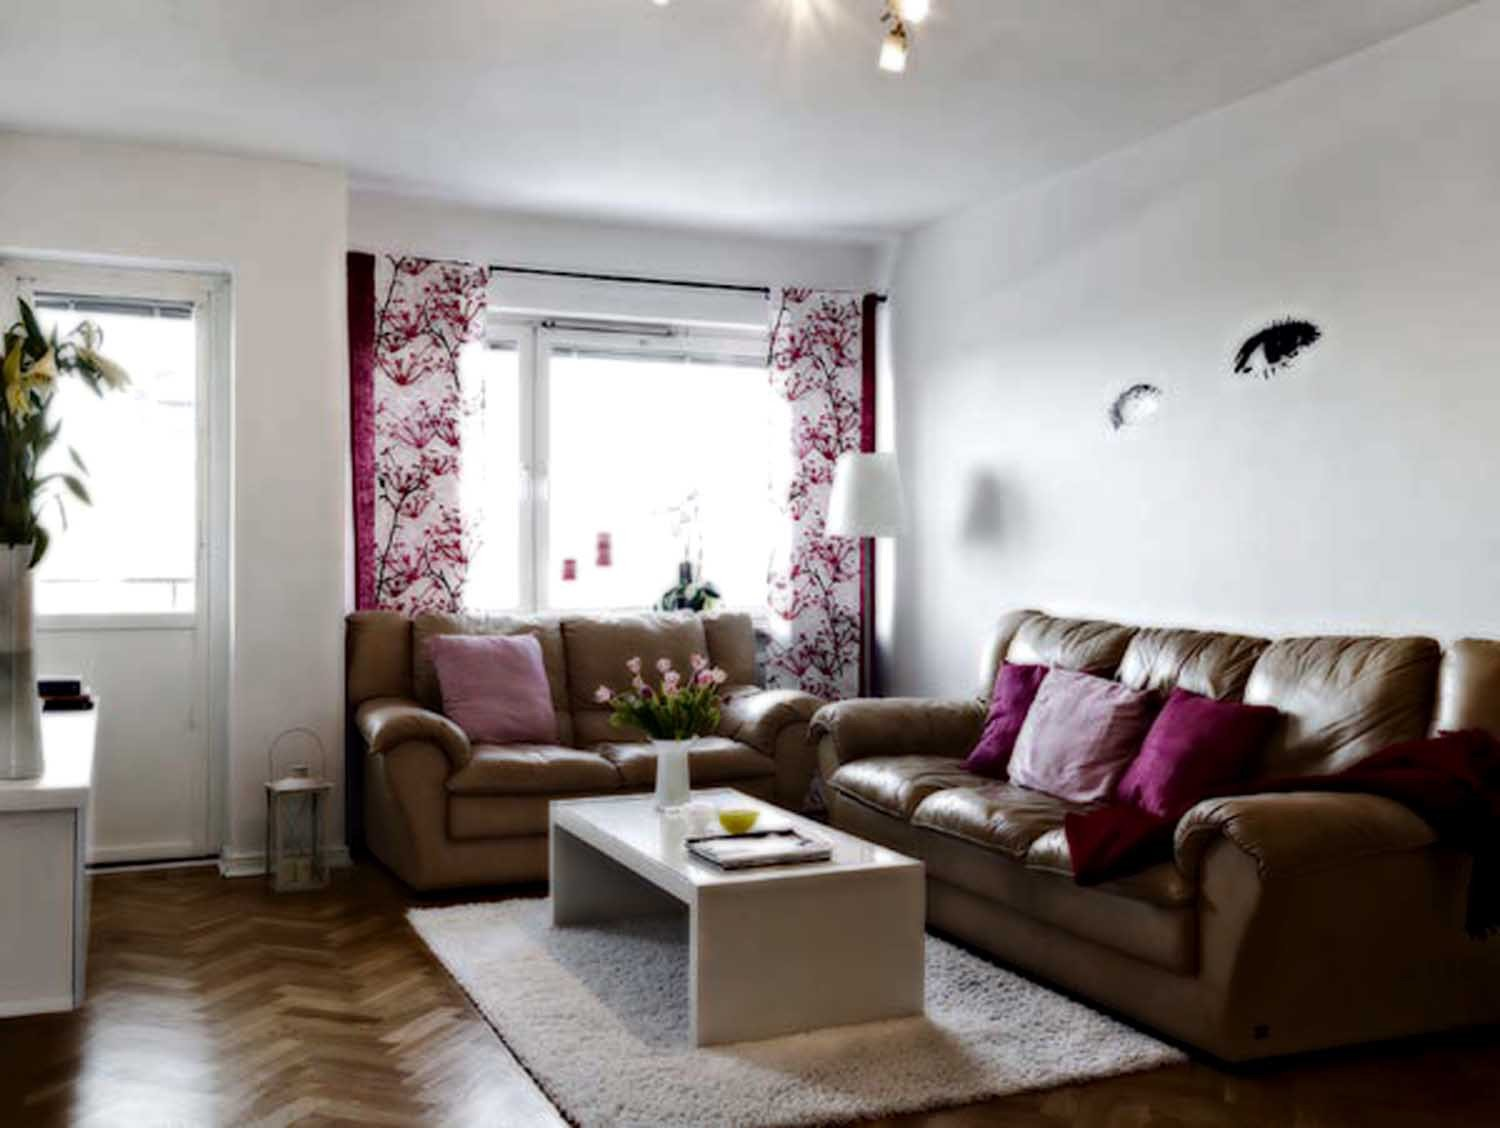 Cute Small Living Room Ideas Inspirational Minimalist Apartment Interior Design Ideas Inspired by Luxurious French Style